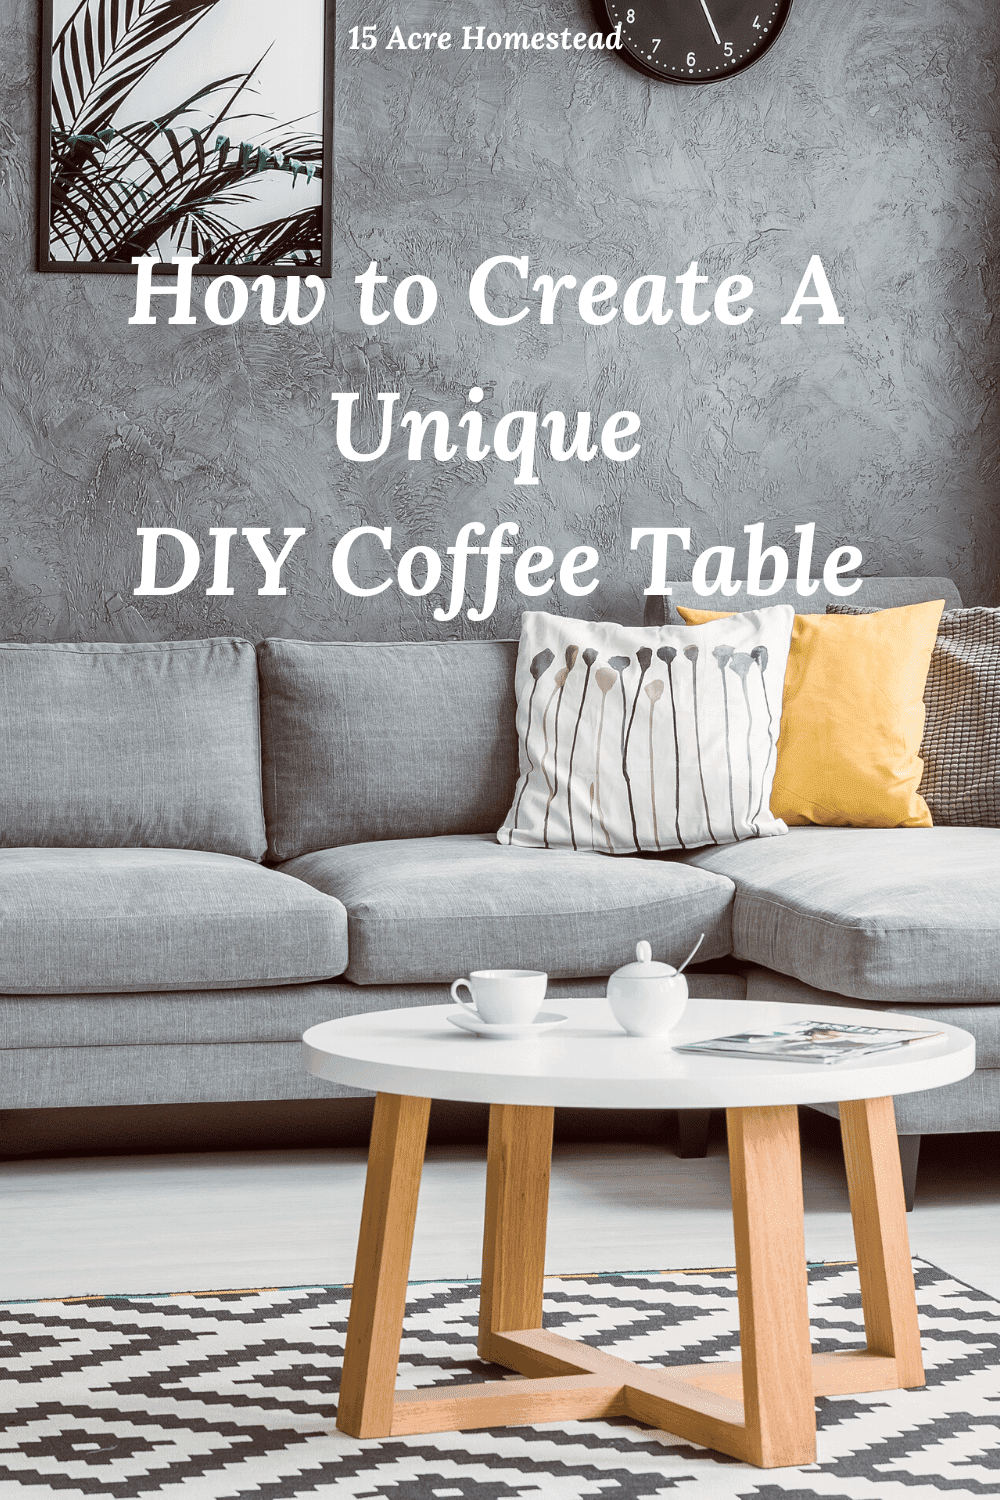 Looking to create a unique piece for your living space? Use these tips to create a one-of-a-kind coffee table today.